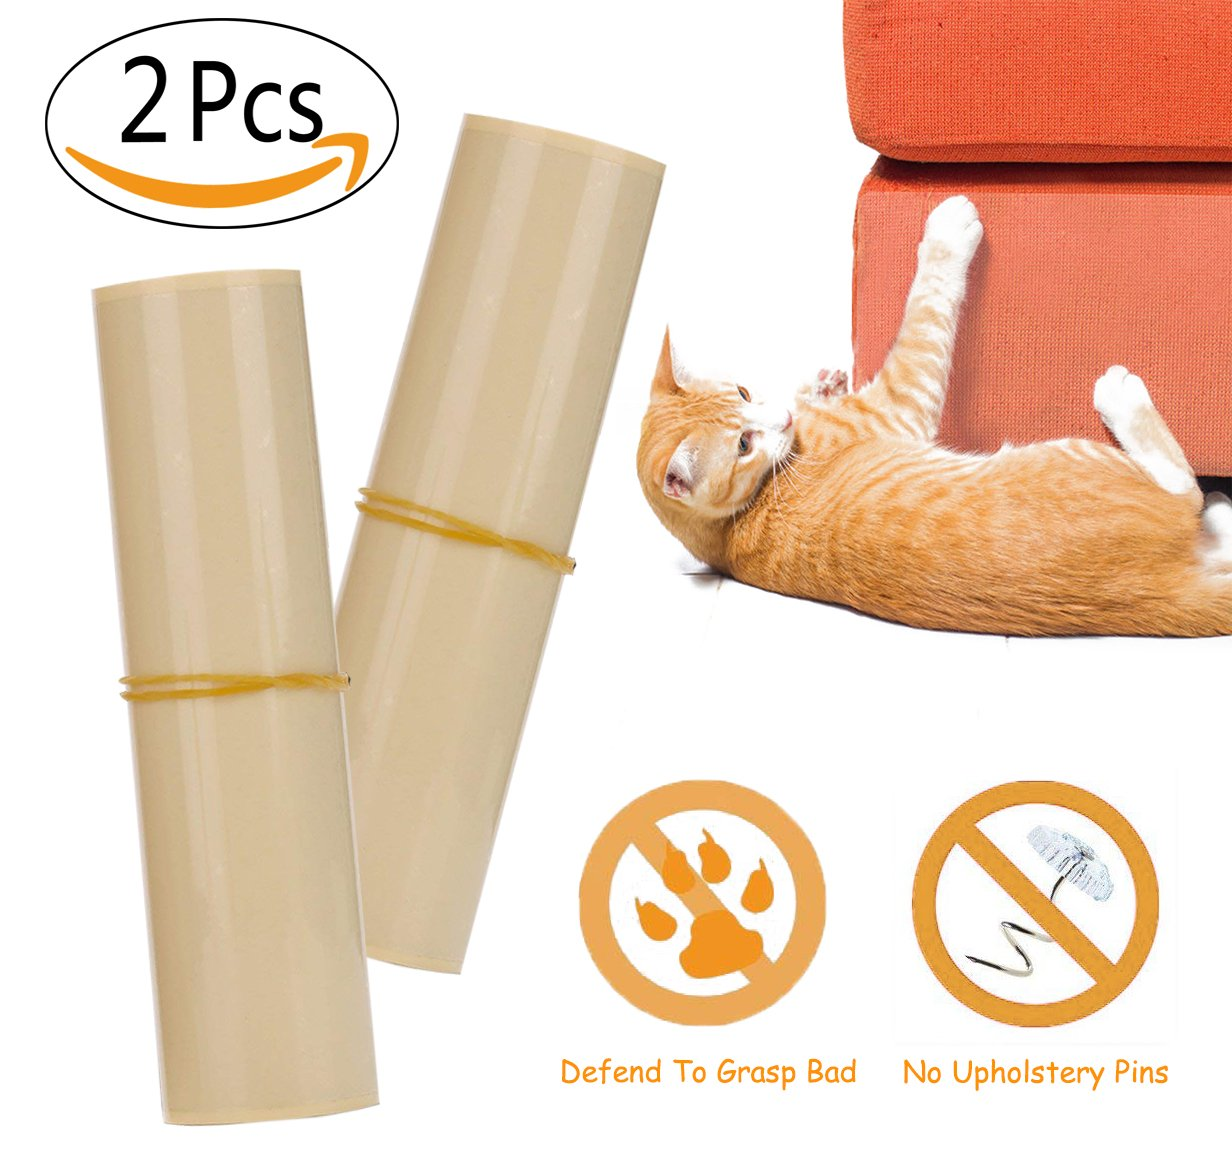 2 Pieces Pet Couch Guard, Furniture Protectors 20x8 inch With Self-Adhesive Pads To Avoid Pets Scratching or Clawing Cover To Protect The Upholstery, Walls, Mattress, Car Seat, Door